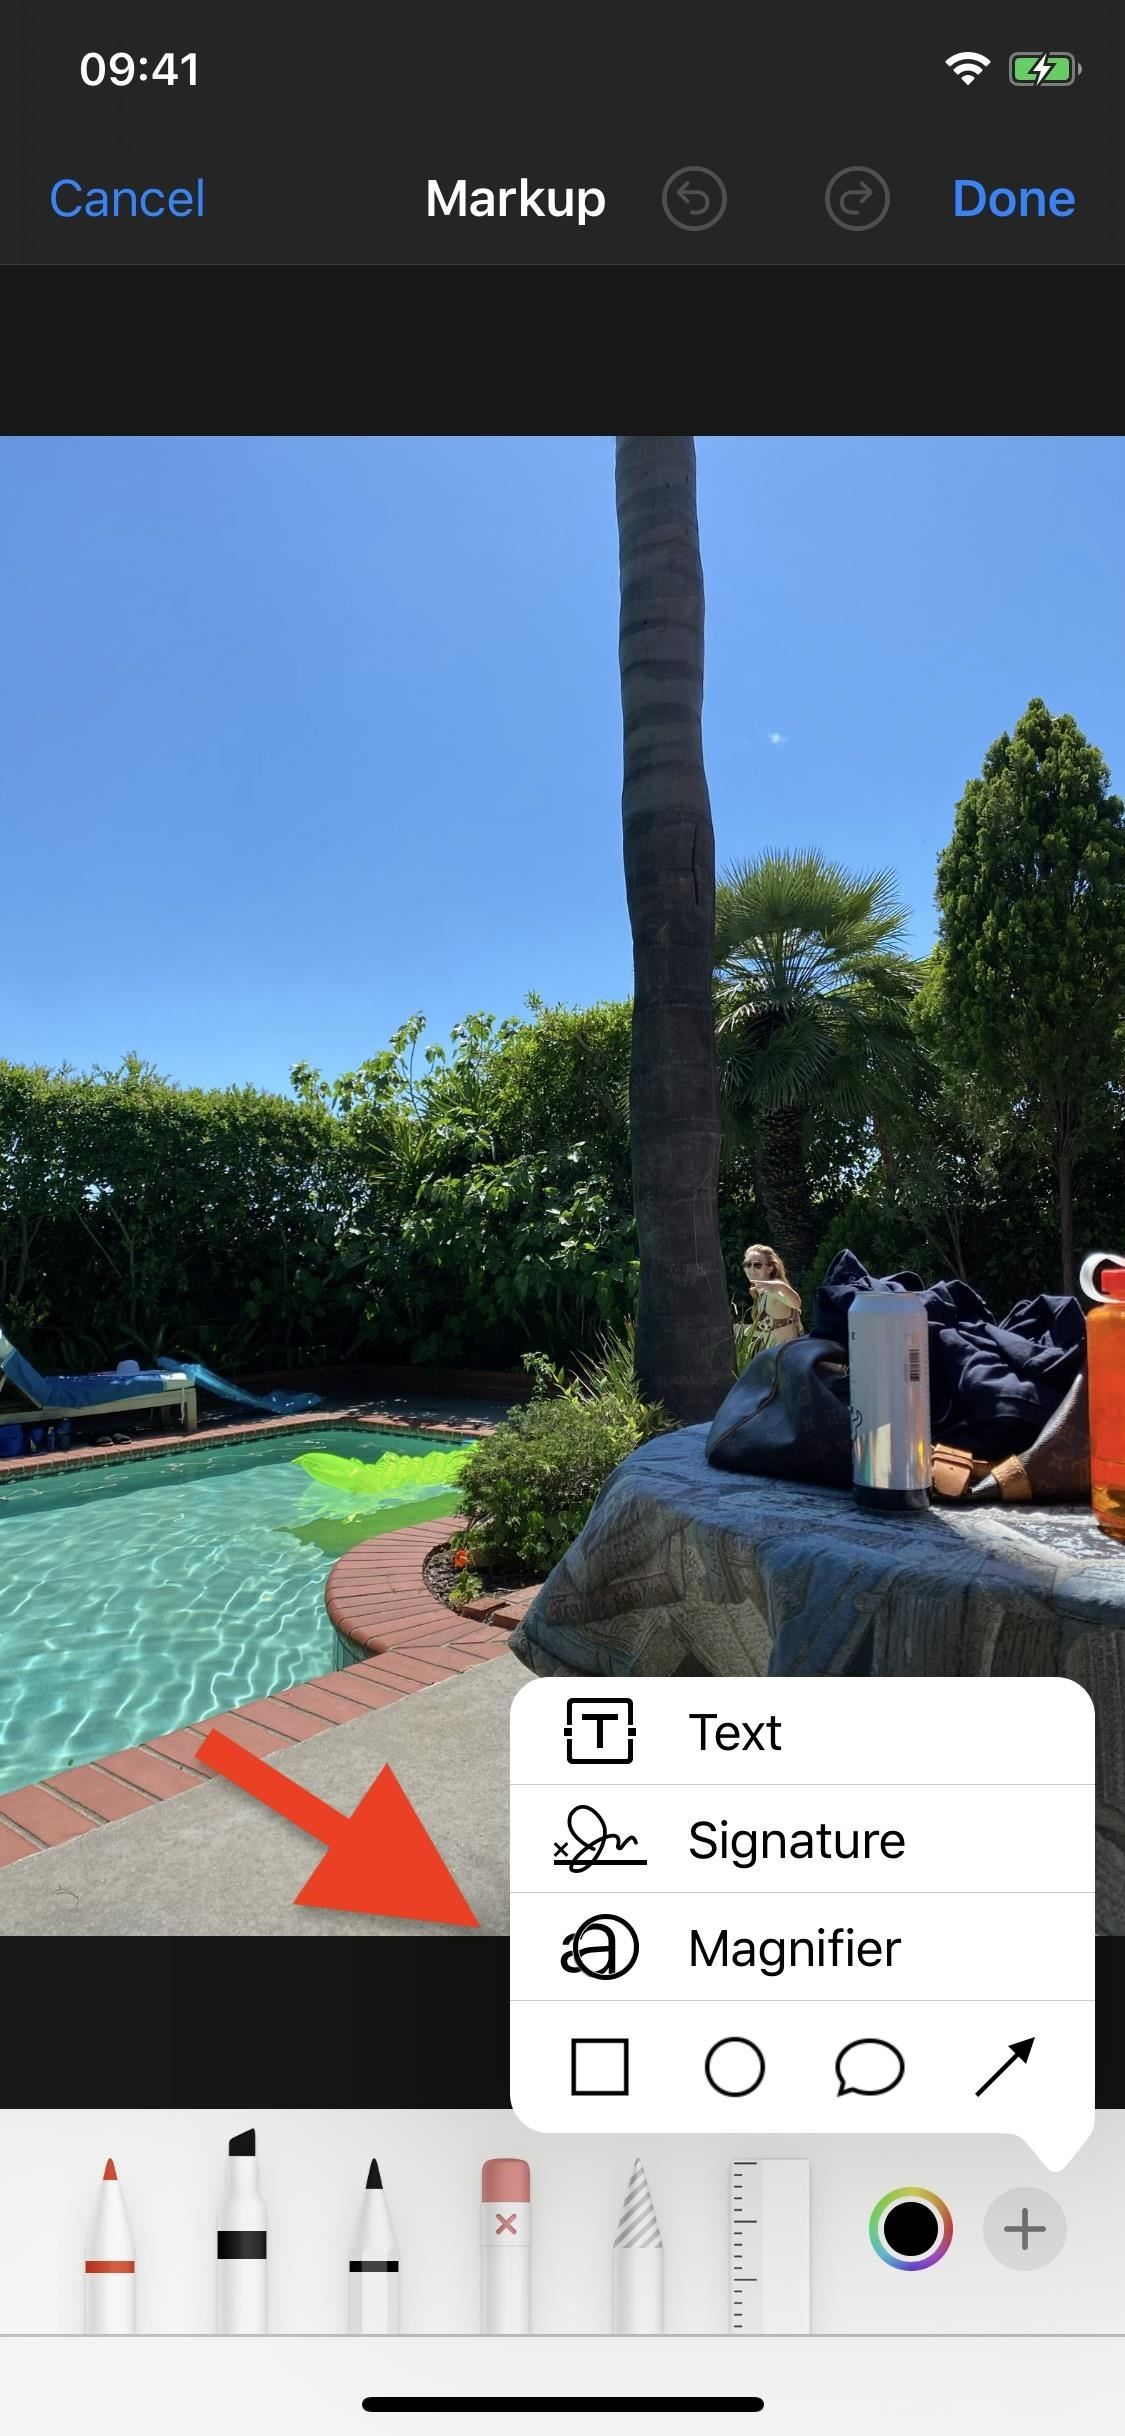 Magnify Details in Screenshots & Photos on Your iPhone to Focus Attention on What Matters